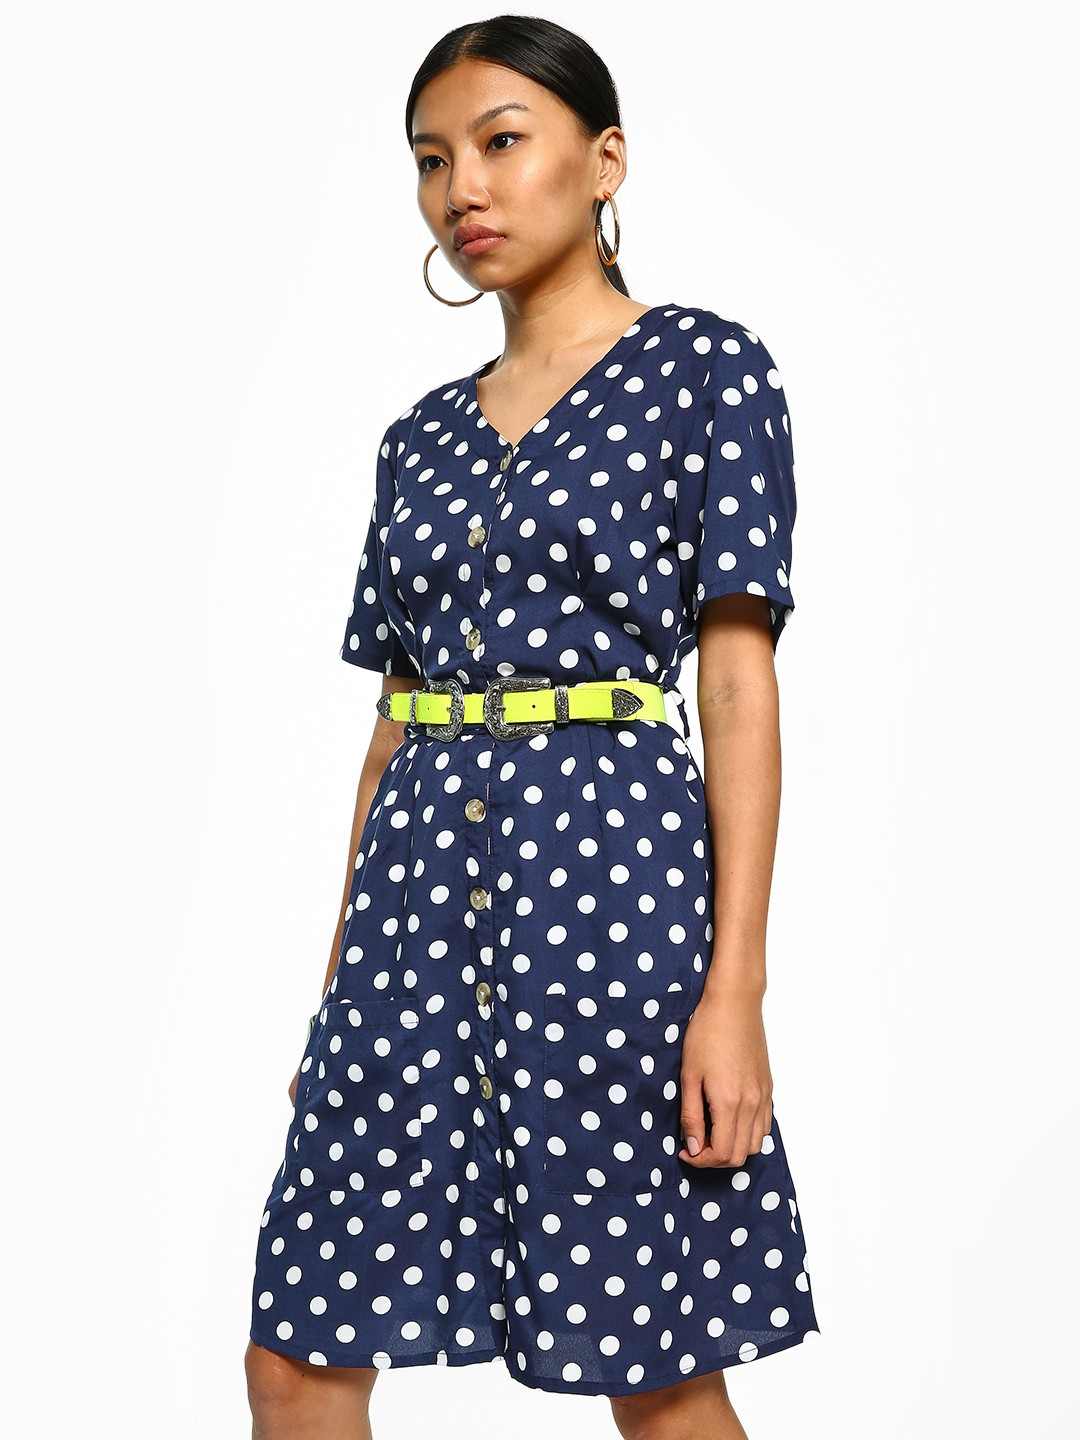 Sbuys Multi Polka Dot Tie-Waist Shift Dress 1